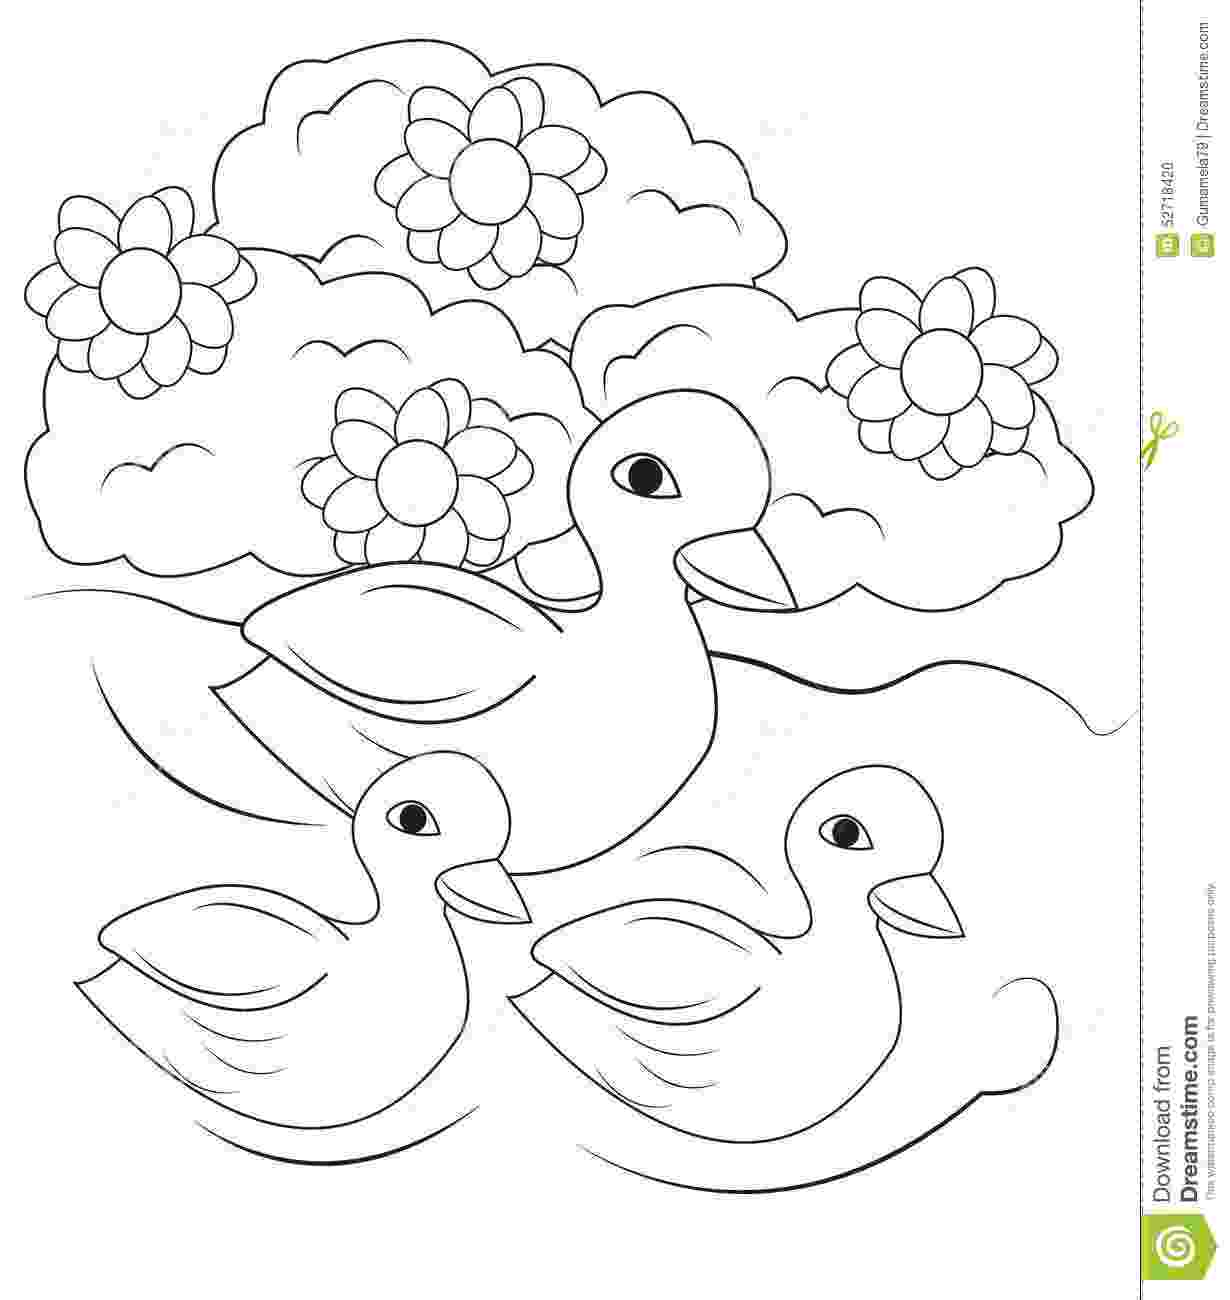 pond pictures to color coloring club from the pond pictures pond color to